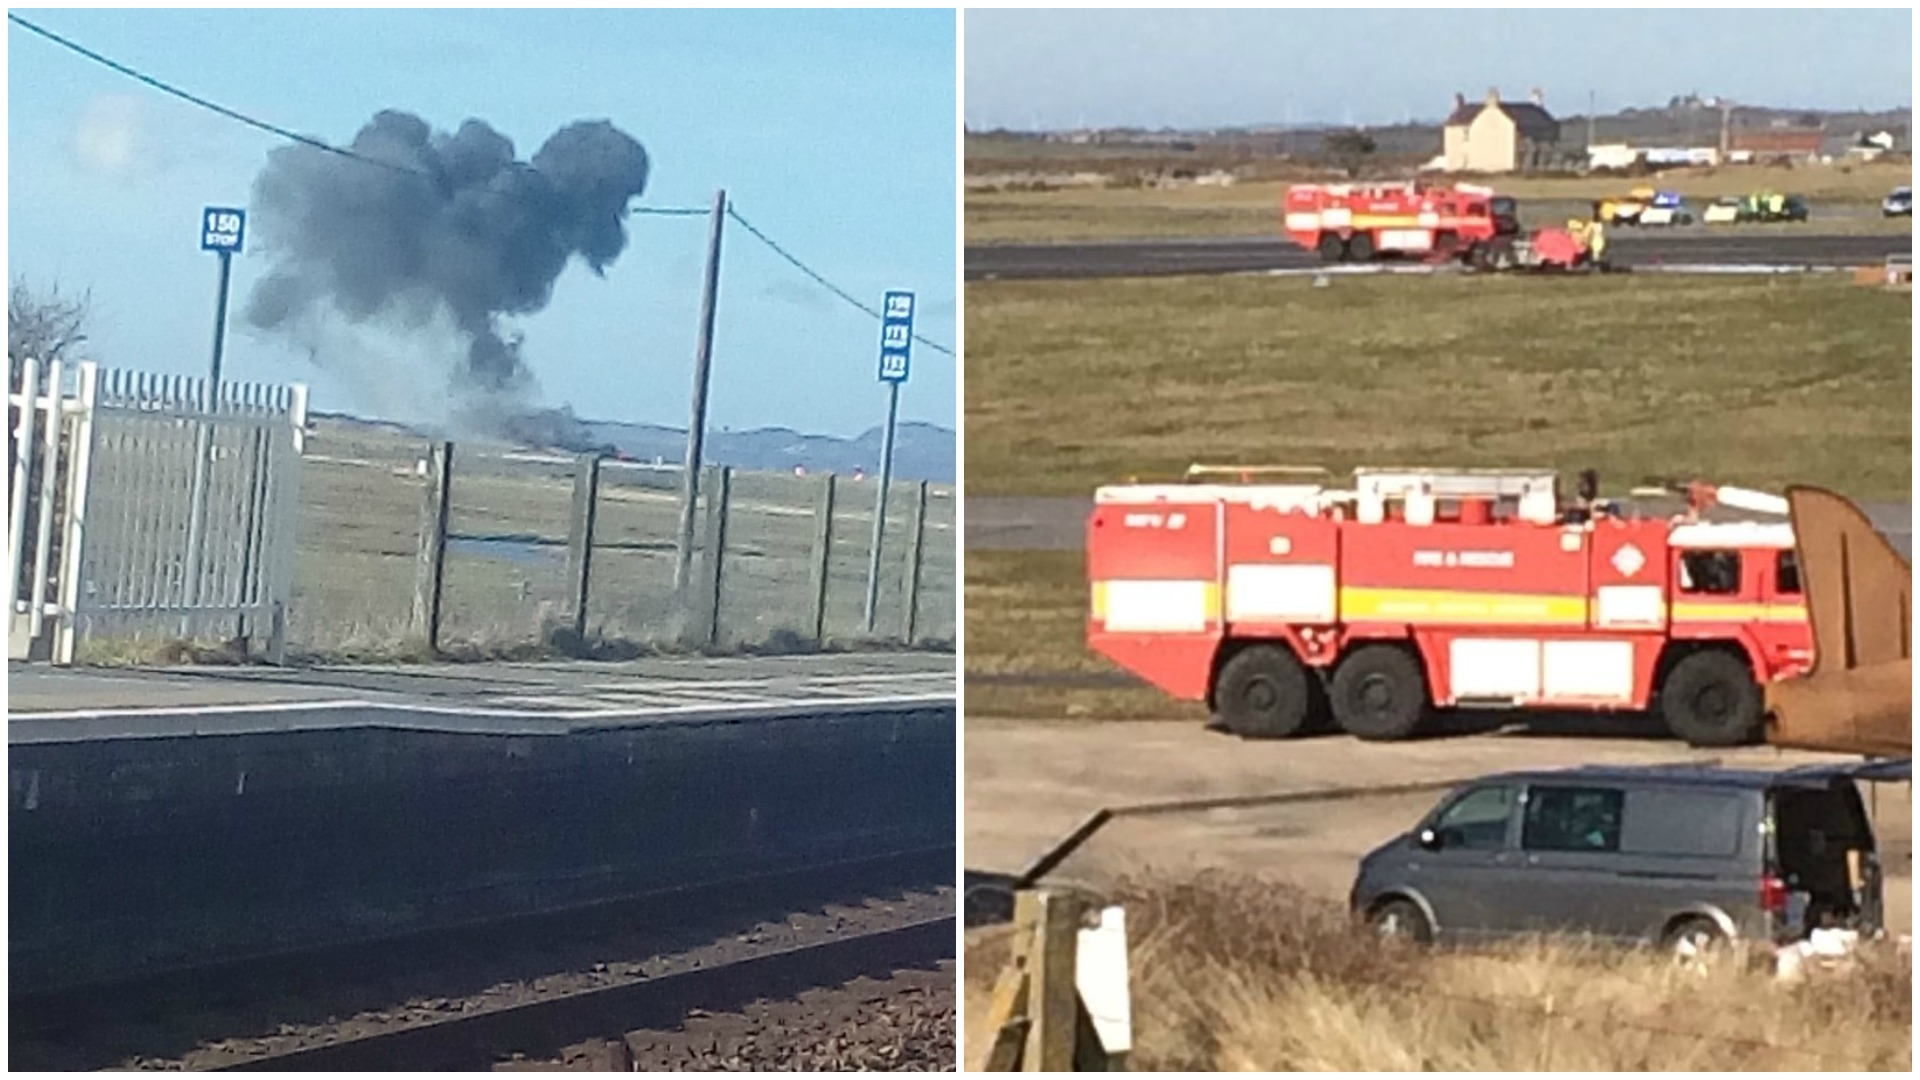 Smoke rising after the Red Arrows jet crashes and, right, emergency services at RAF Valley. Pictures: Sian Rebecca Williams/PA and Kerry Roberts